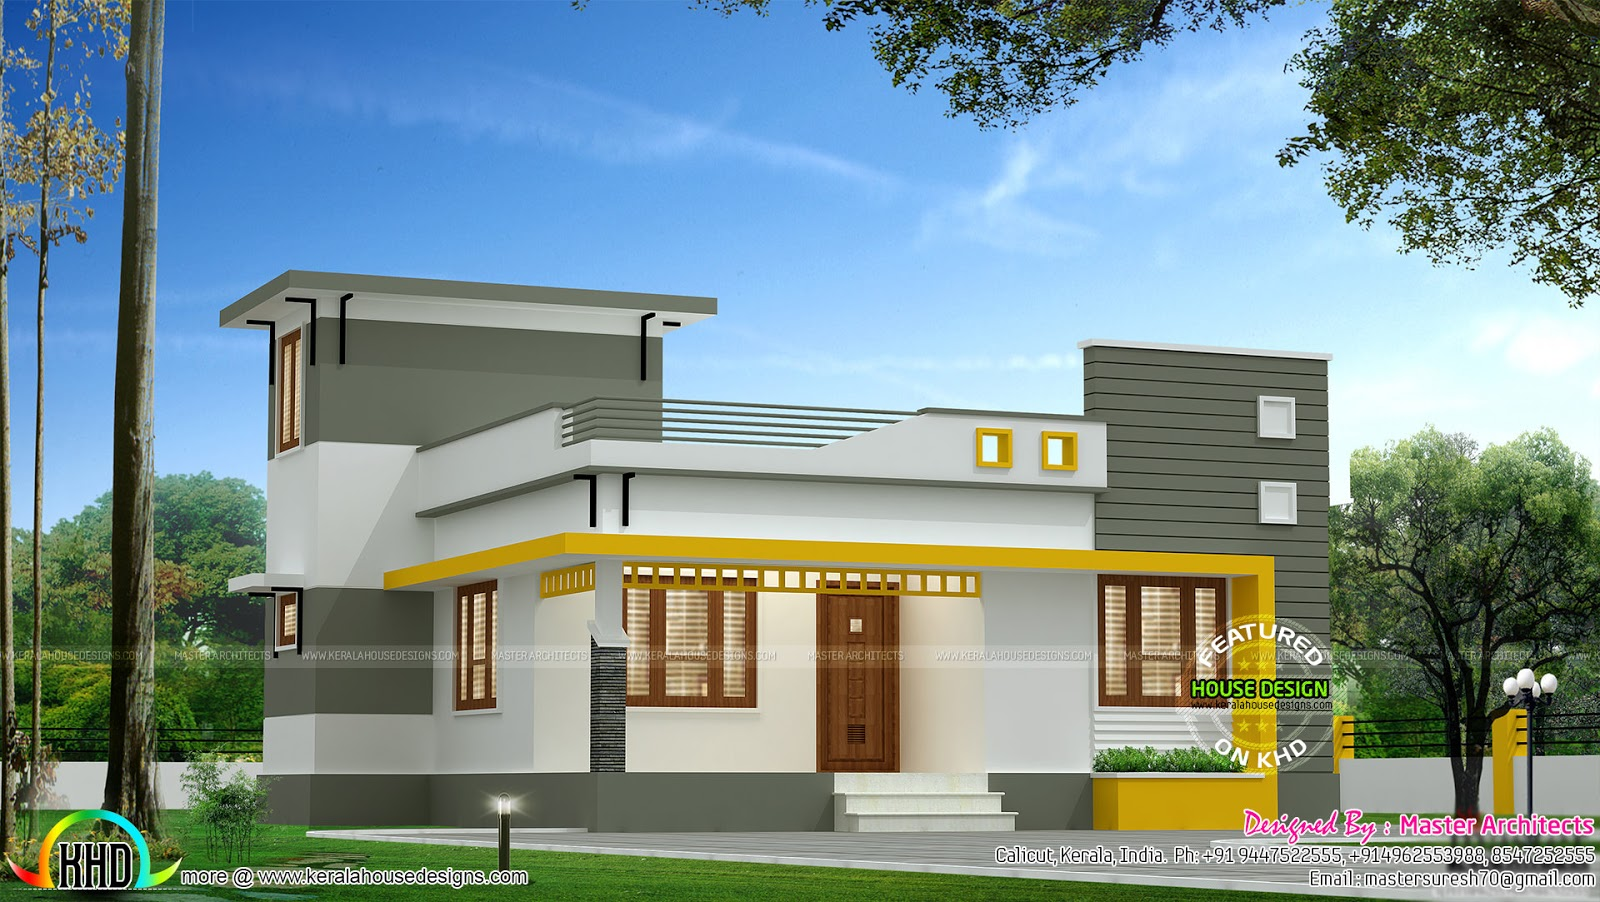 3 bedroom single floor modern architecture home kerala for House design minimalist modern 1 floor